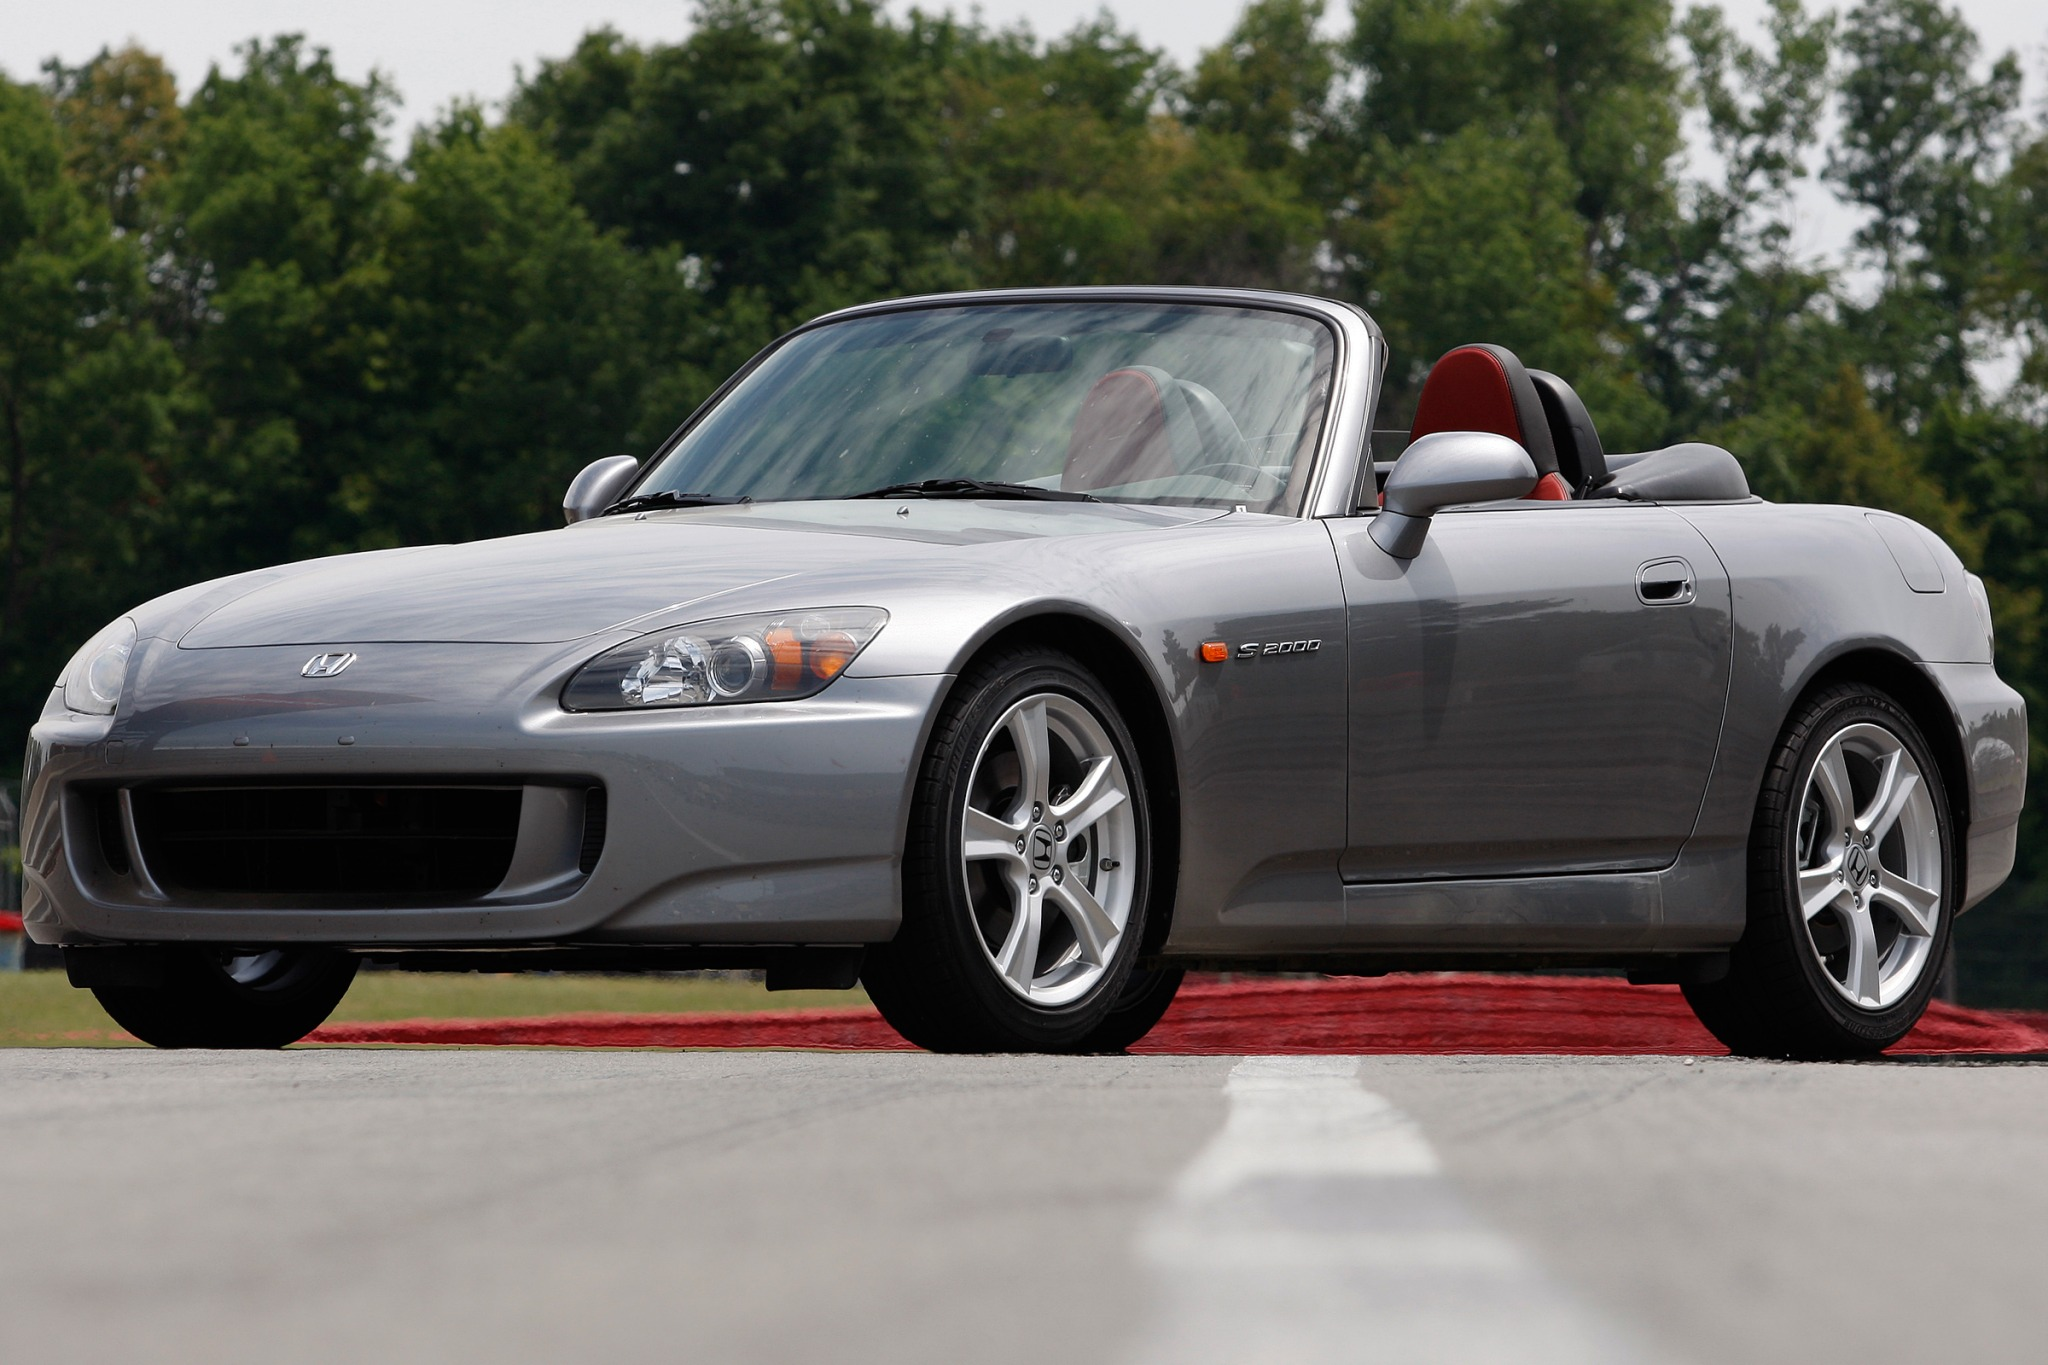 2008 Honda S2000 CR Cente interior #7